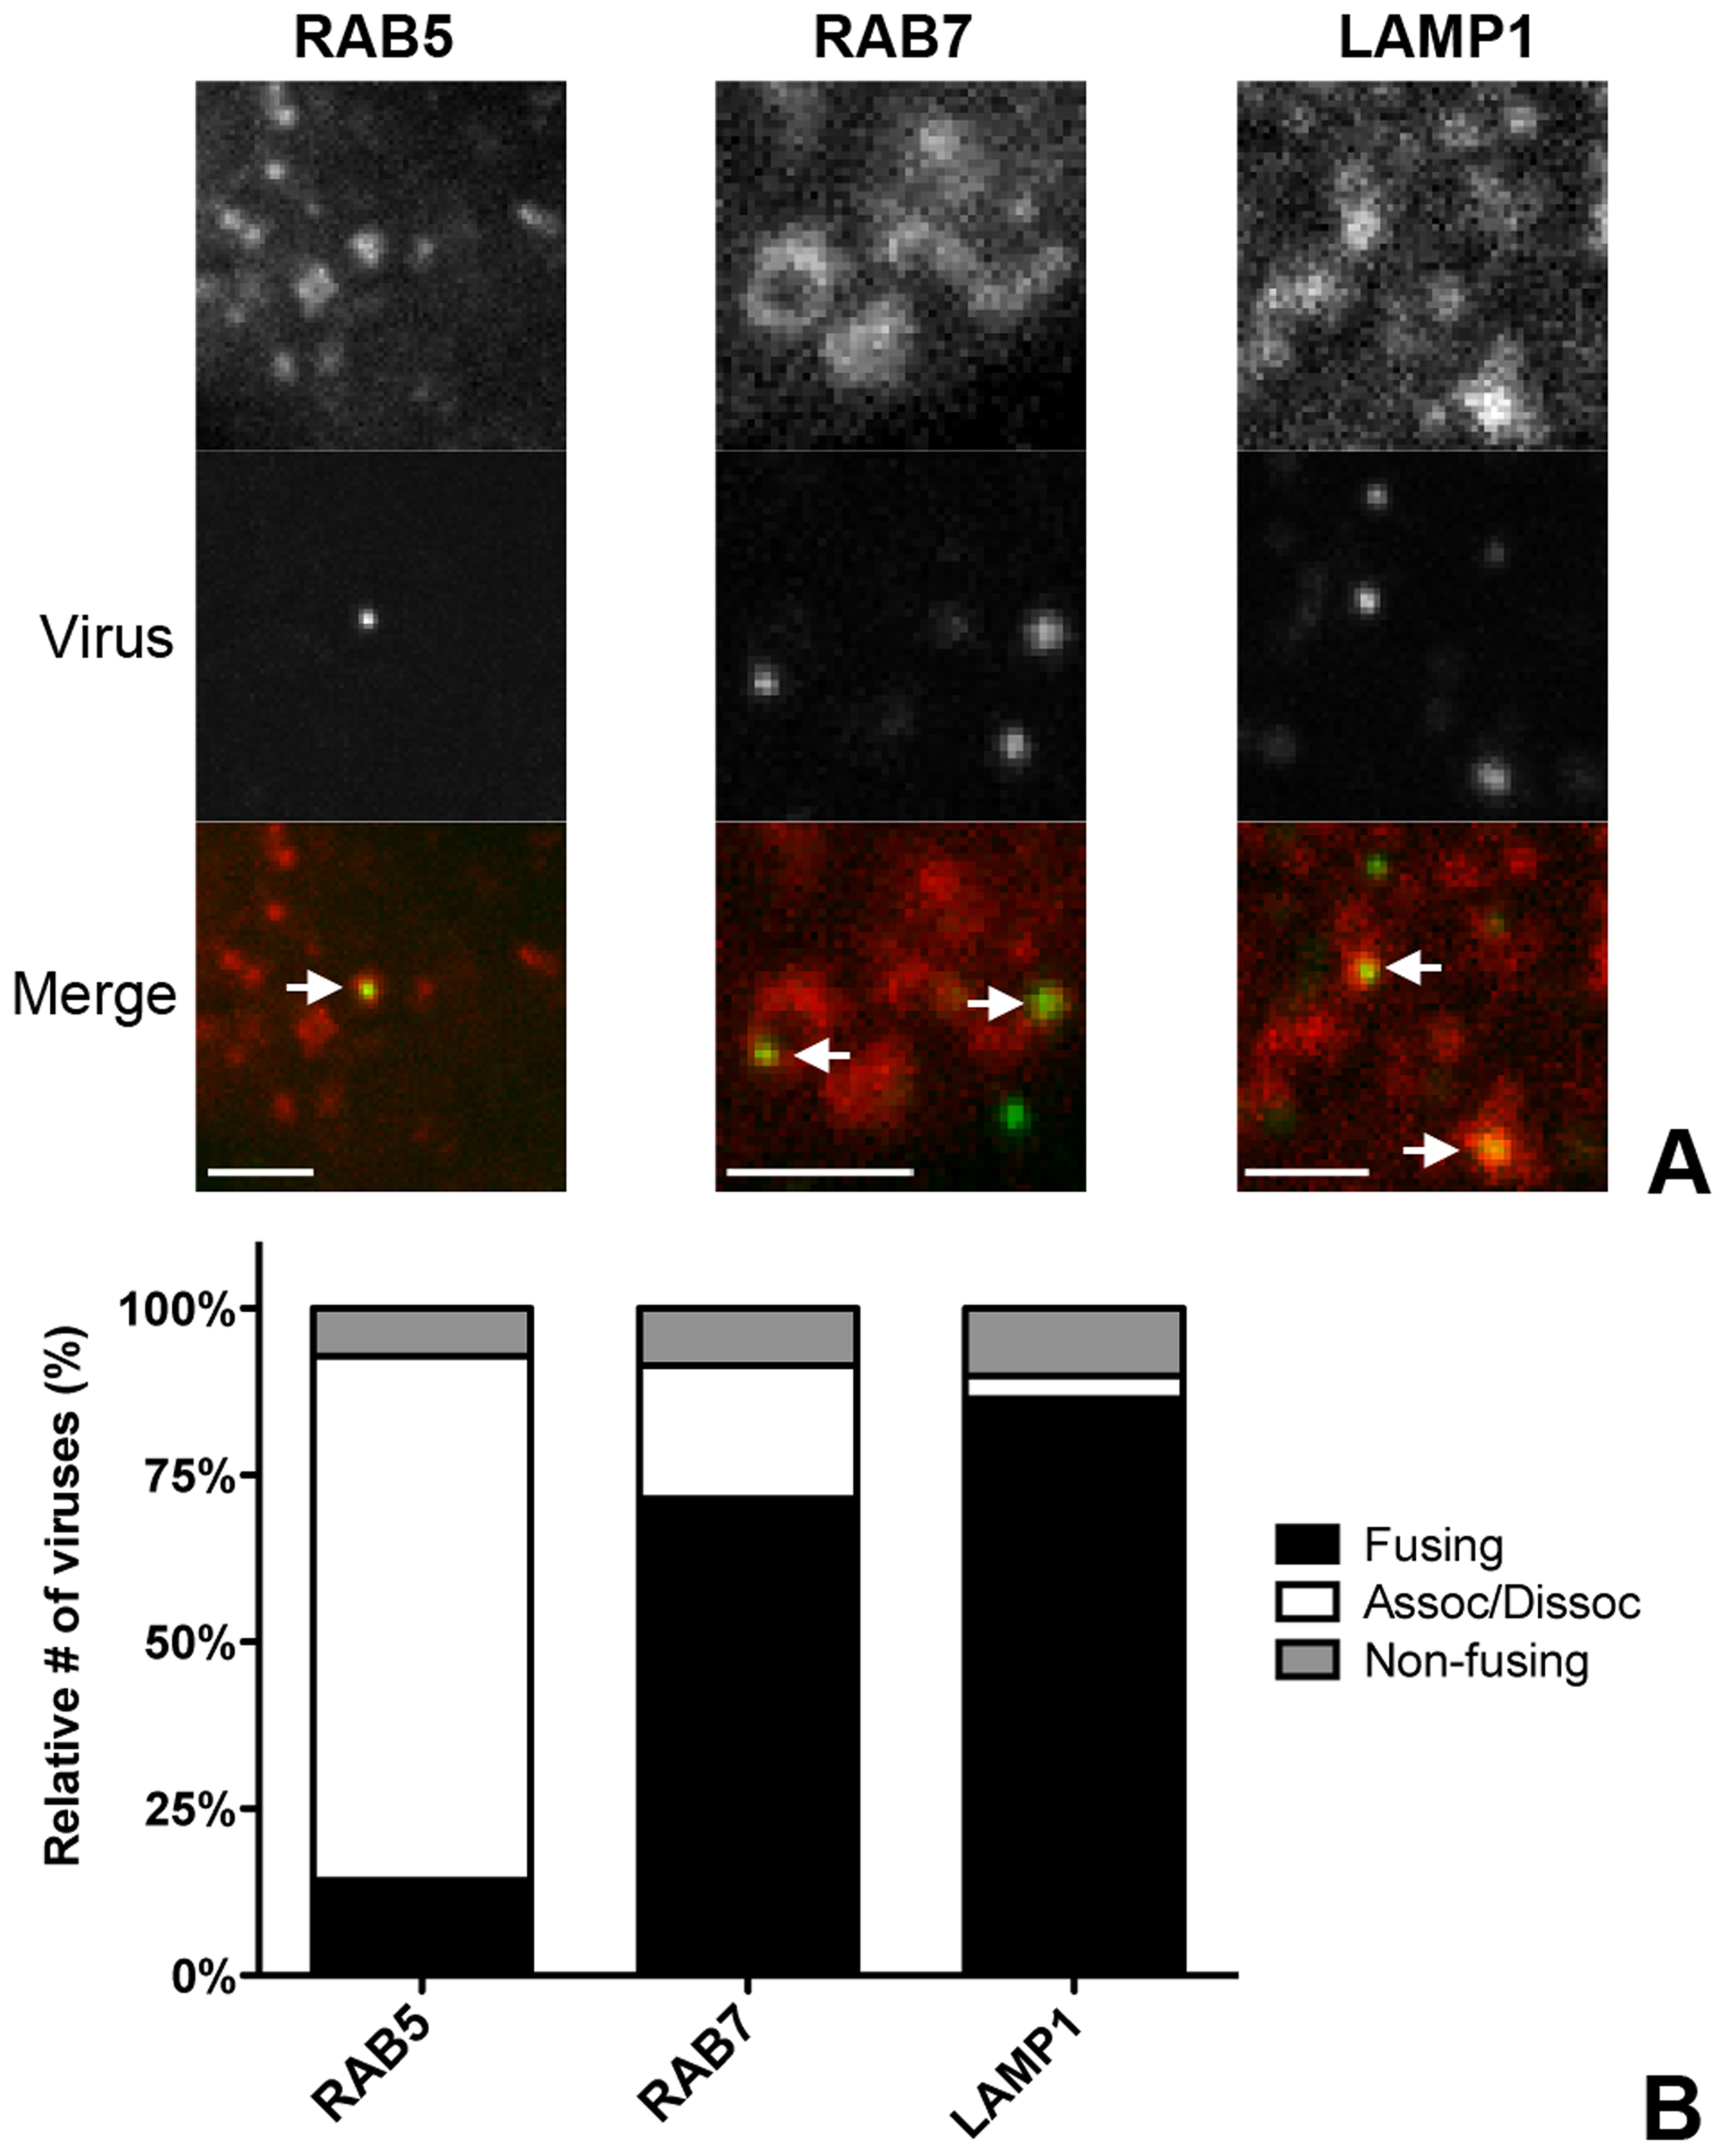 Live-cell microscopy demonstrates co-localization and co-tracking of MHV with endosomal vesicles and fusion of MHV in these vesicles.